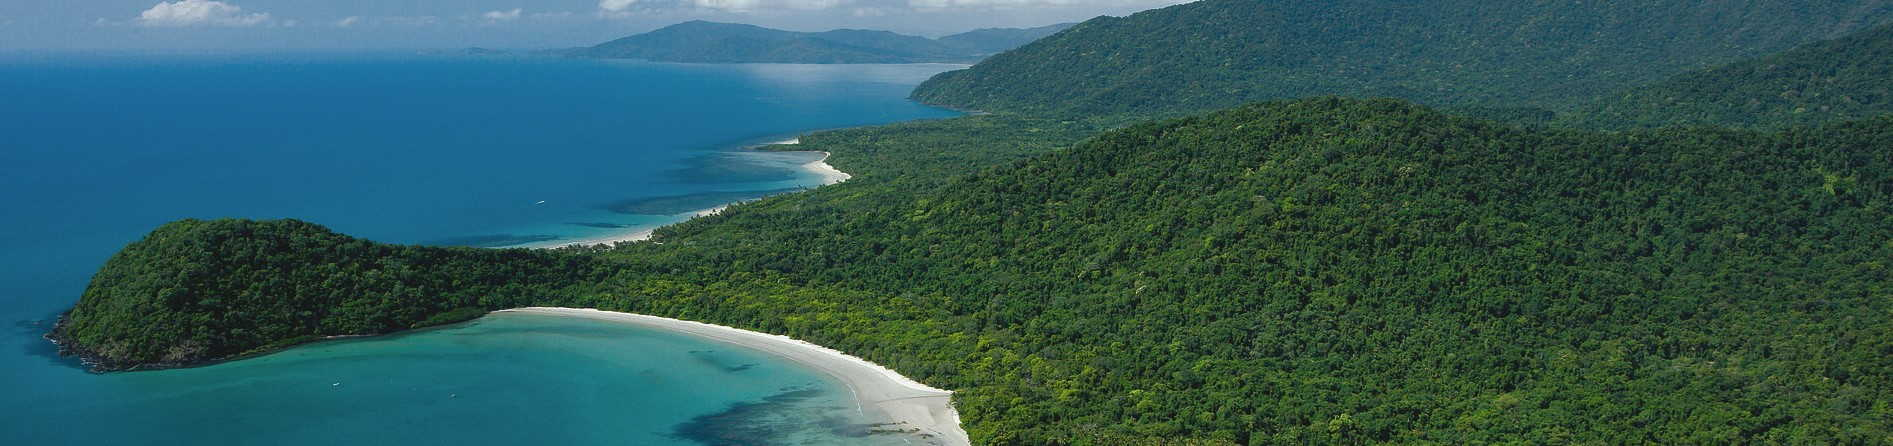 How can you see Cape tribulation during the pandemic?